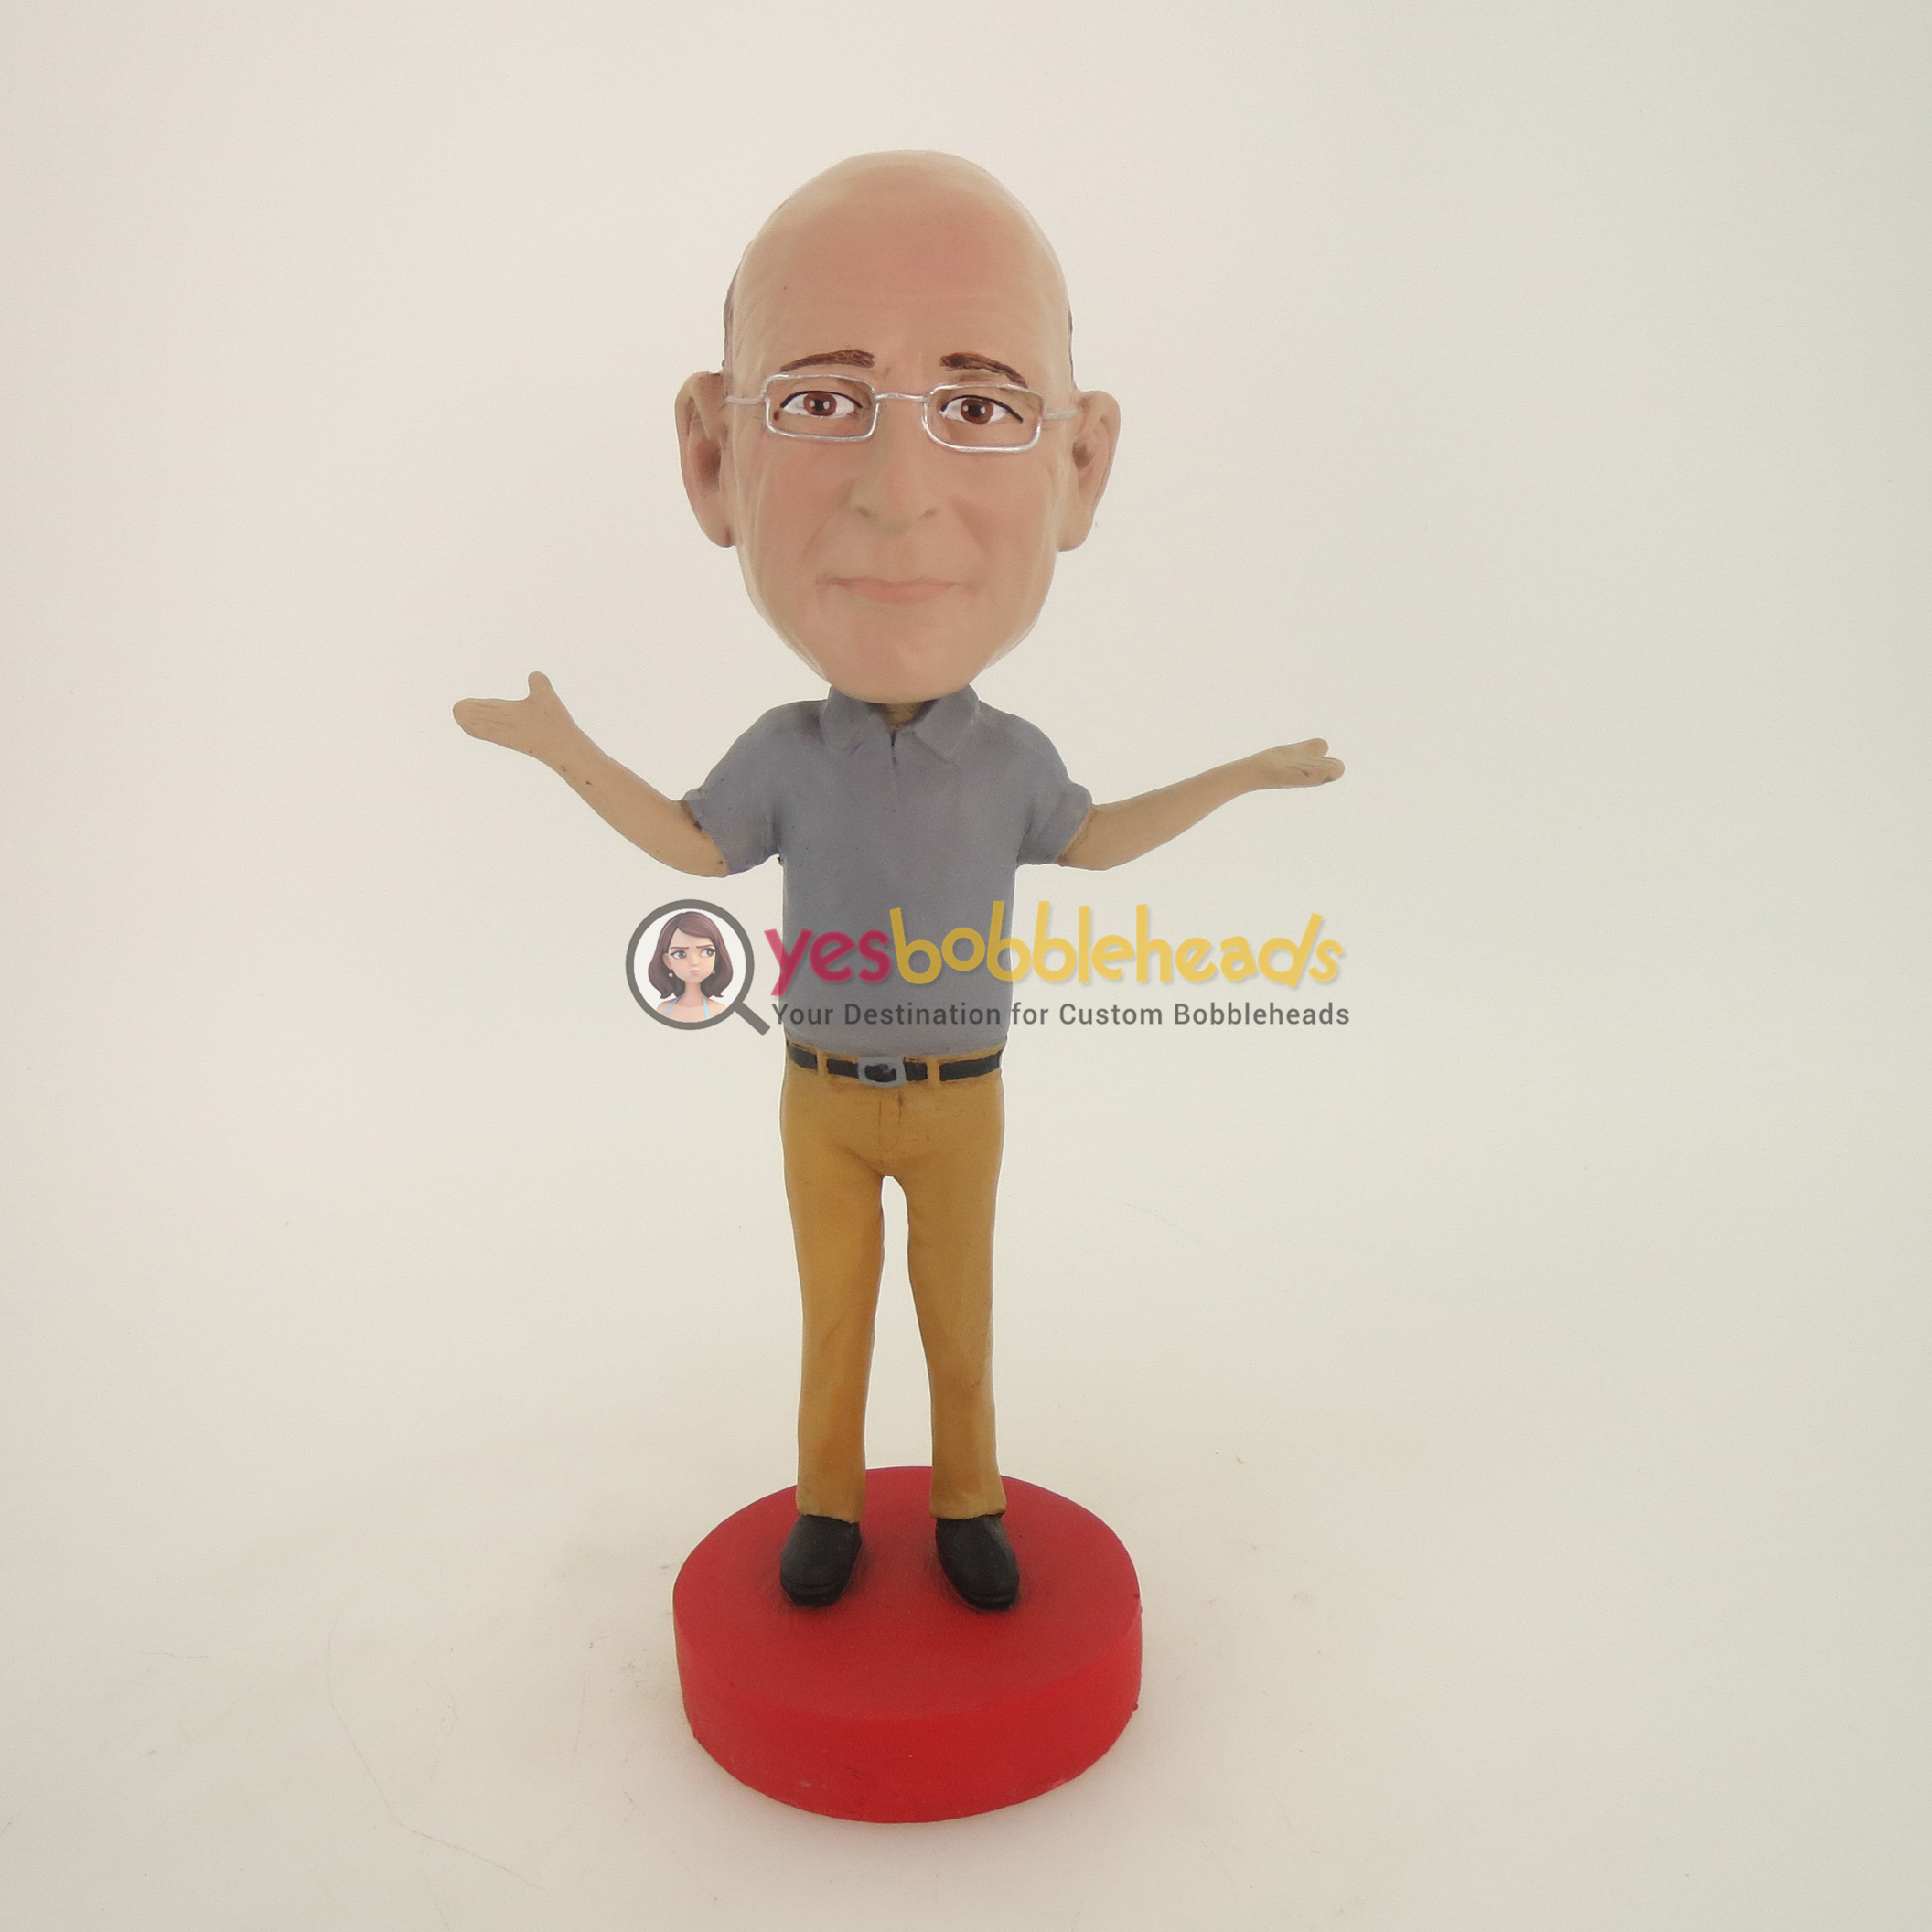 Picture of Custom Bobblehead Doll: Old Man With Hands Up